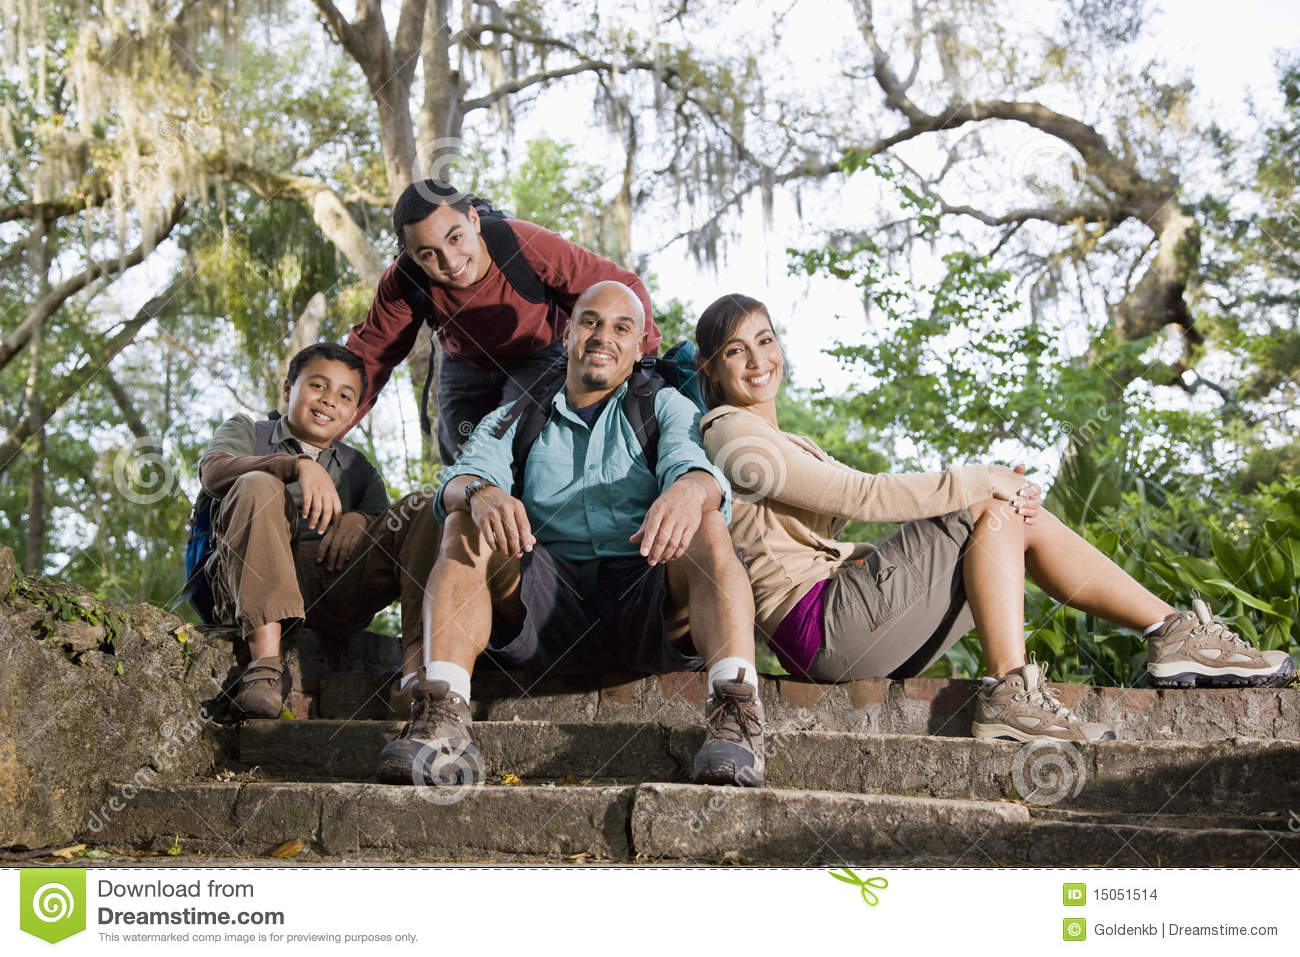 Hispanic Family With Backpacks Hiking In Park Smiling Full